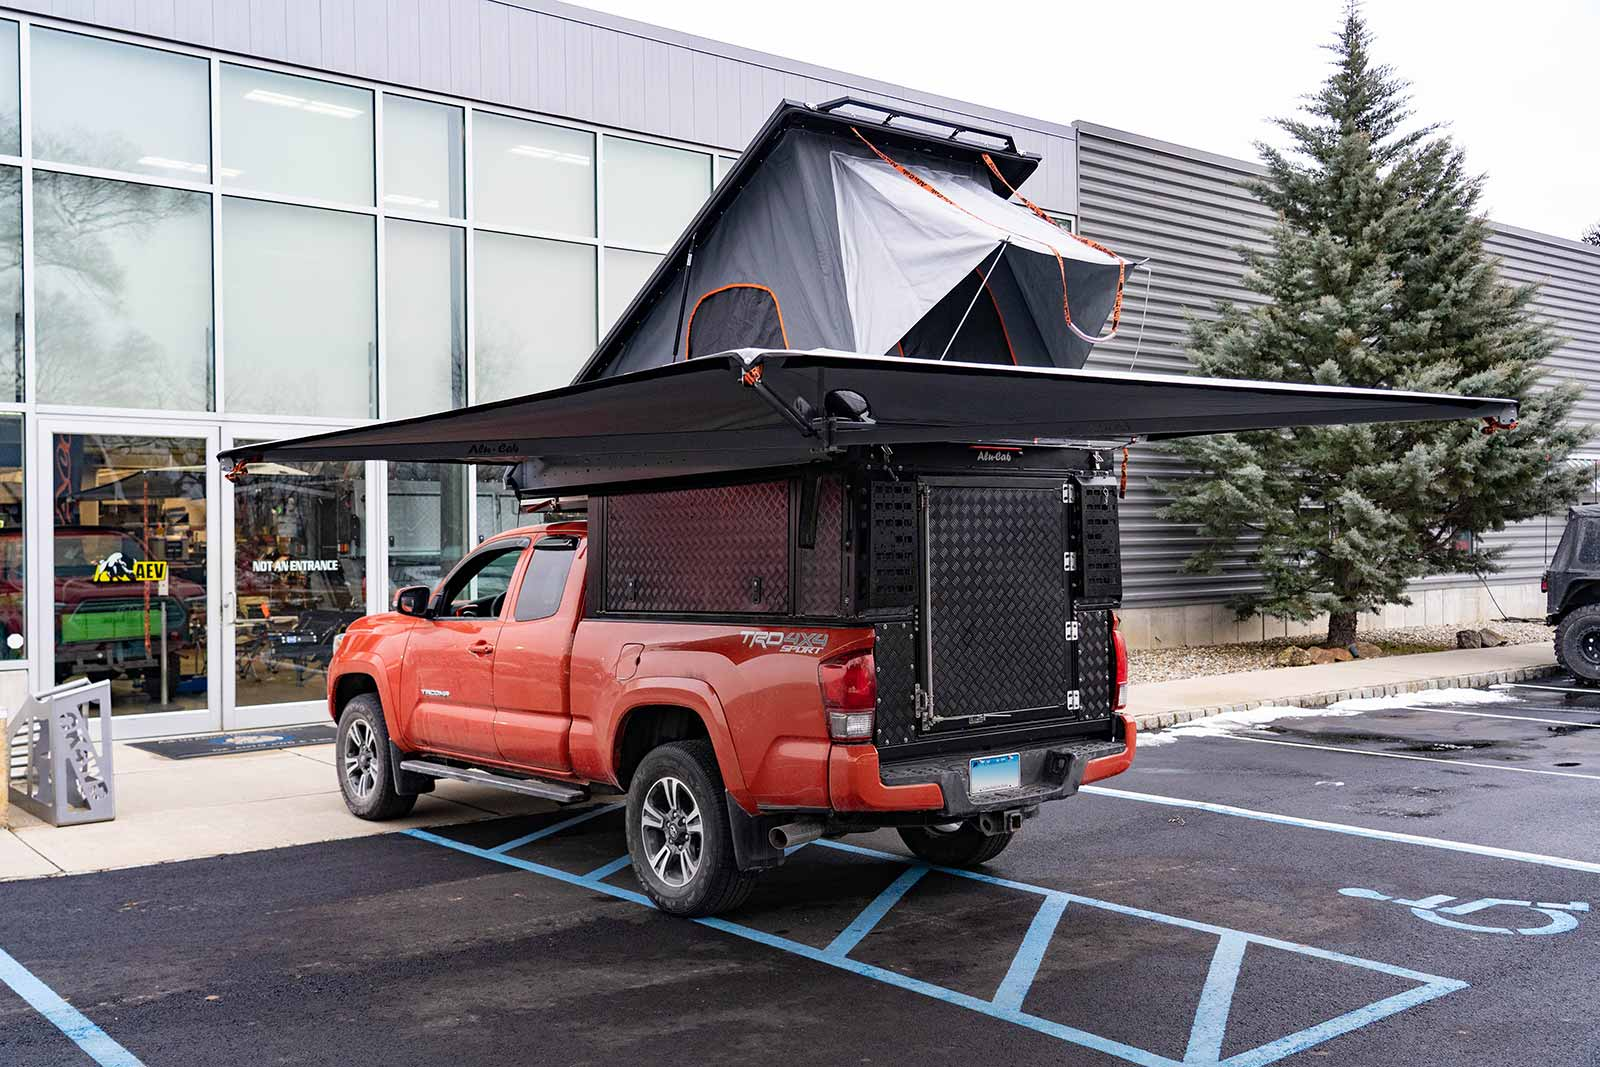 Online Garage: 2016 Toyota Tacoma outfitted with an Alu-Cab Canopy Camper